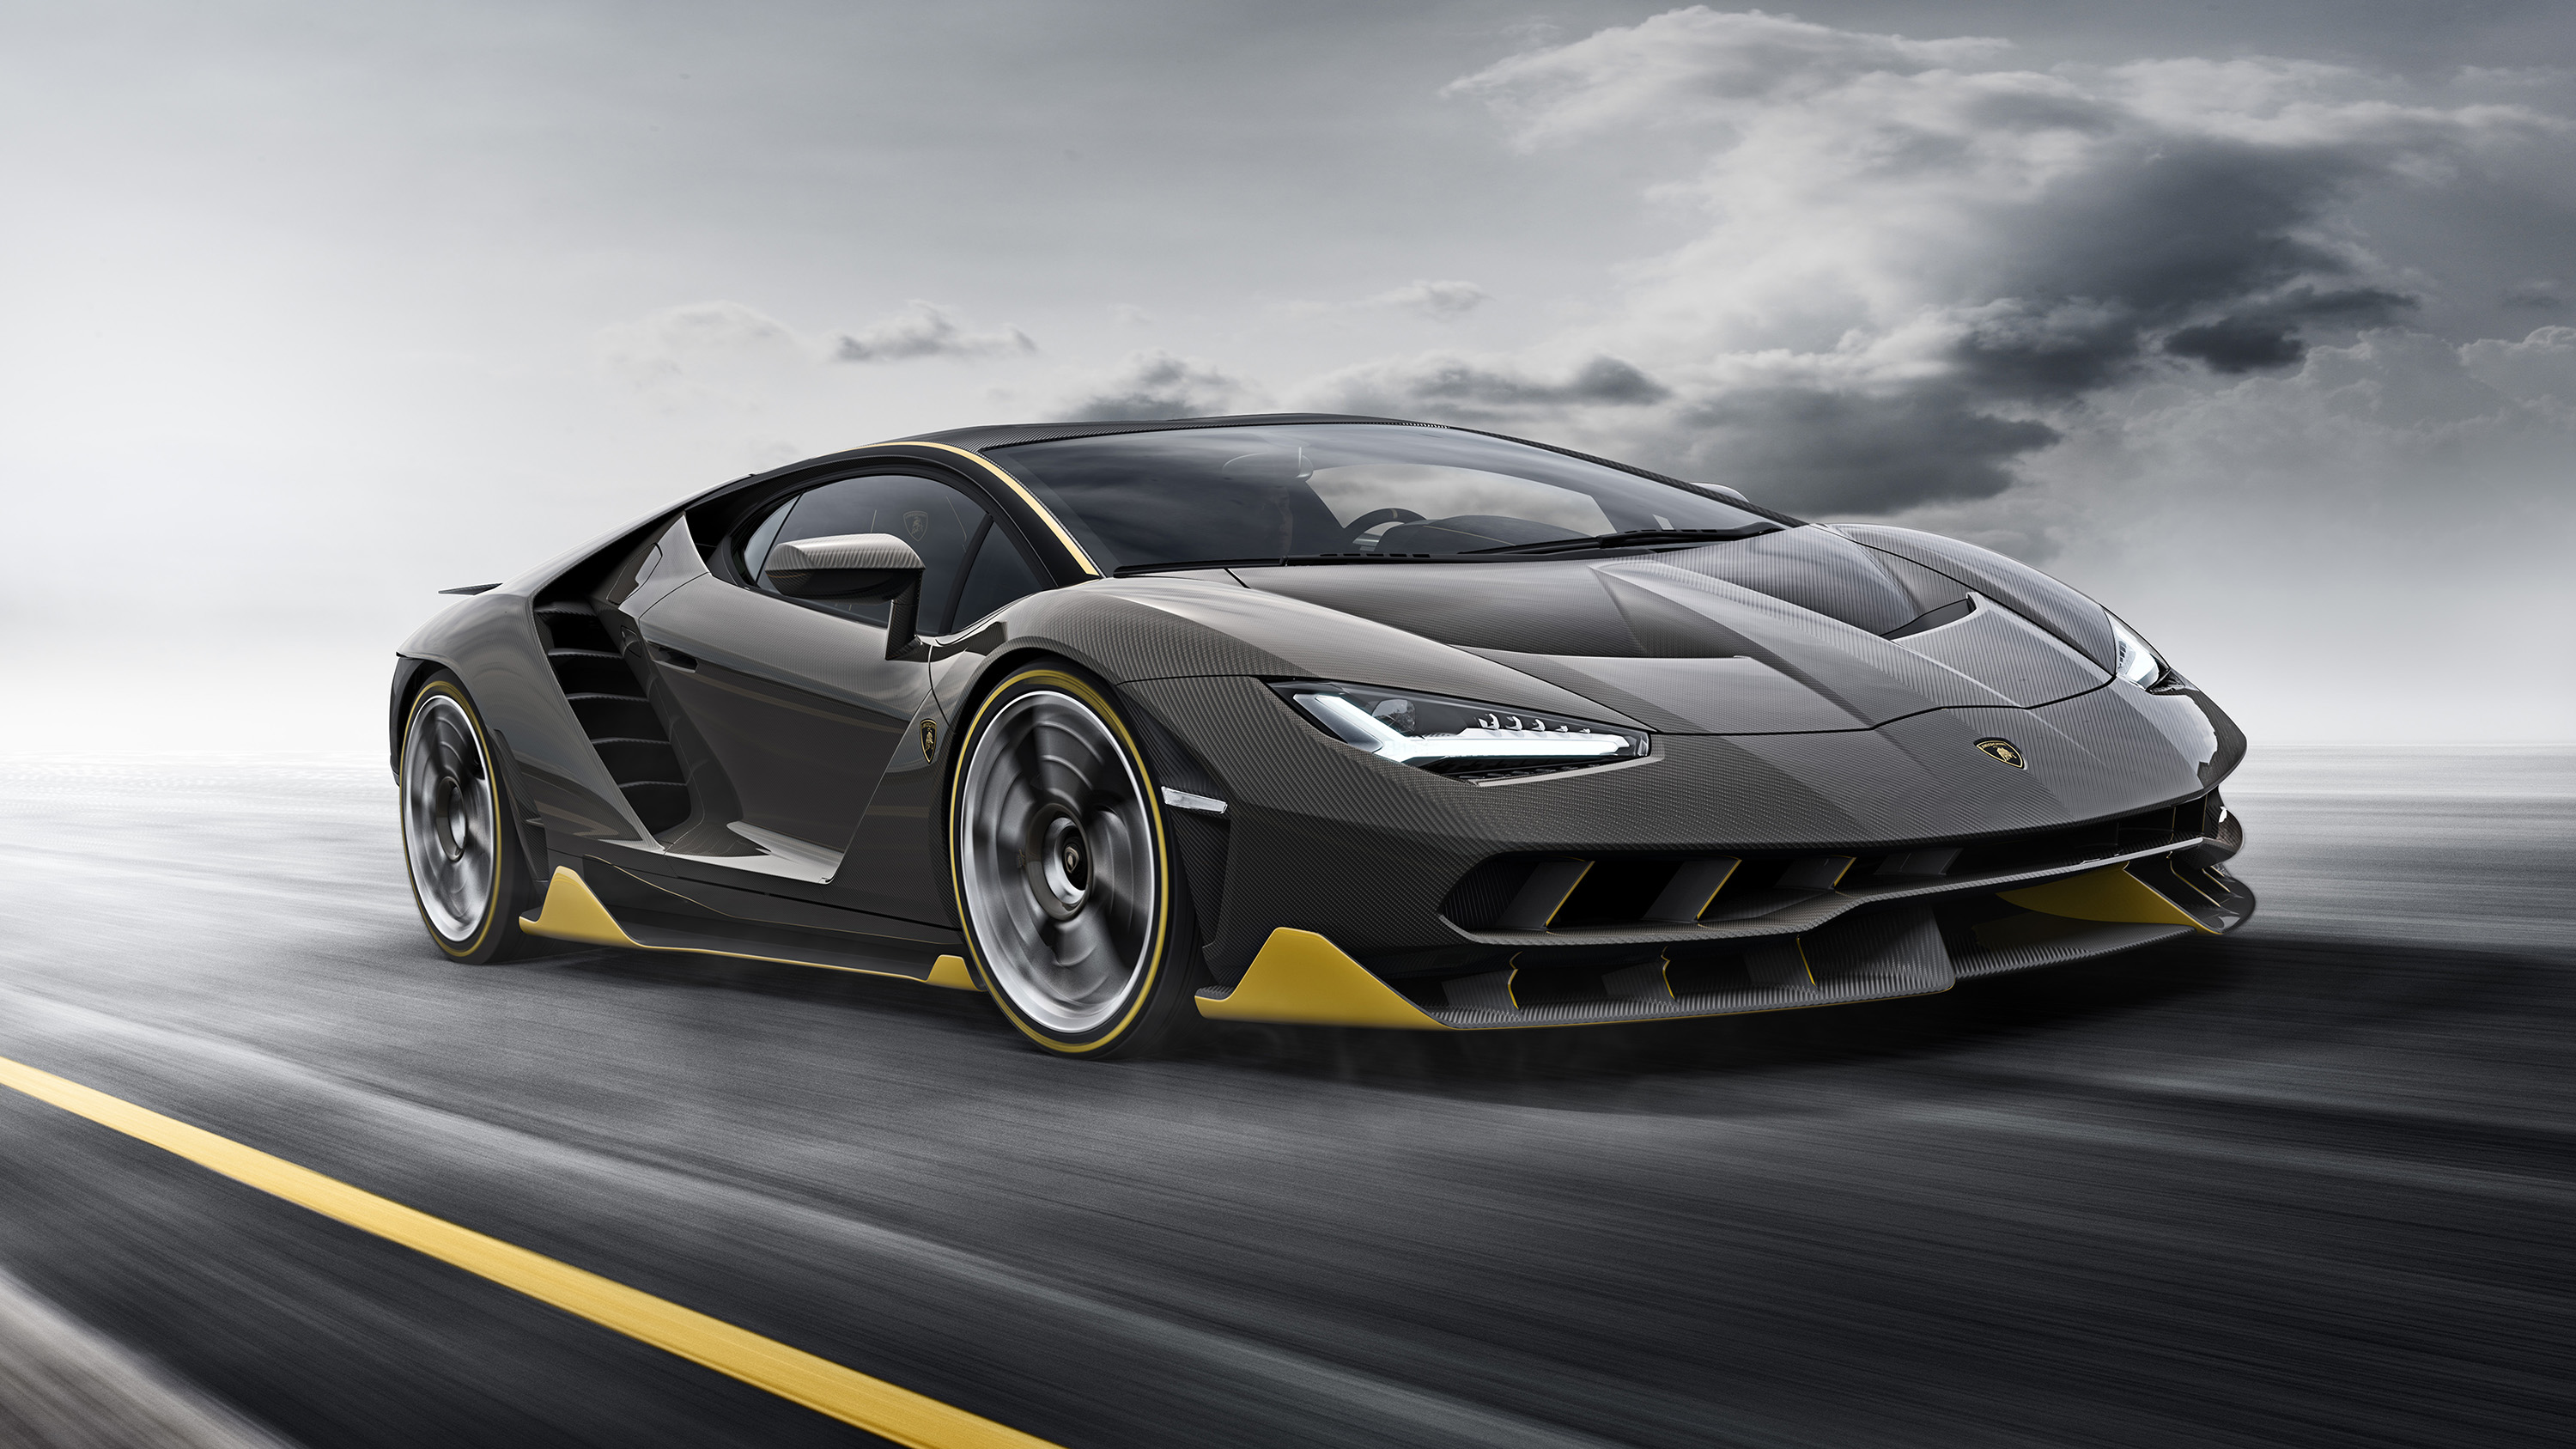 50 Lamborghini Centenario Hd Wallpapers Background Images